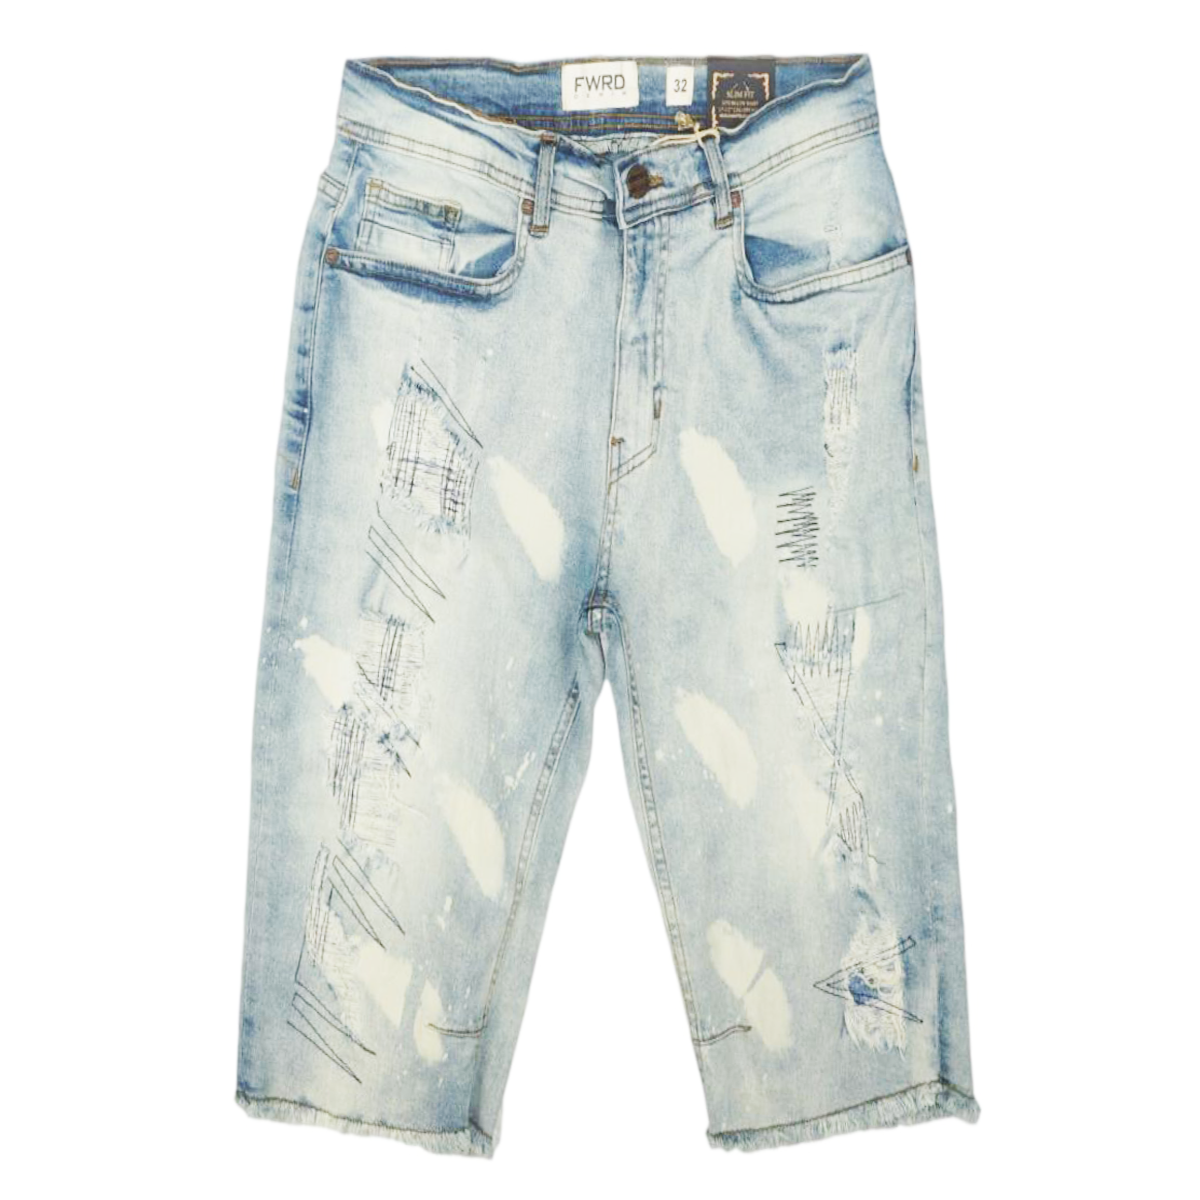 Rip Stained Wash Shorts (Vintage Blue) /C1